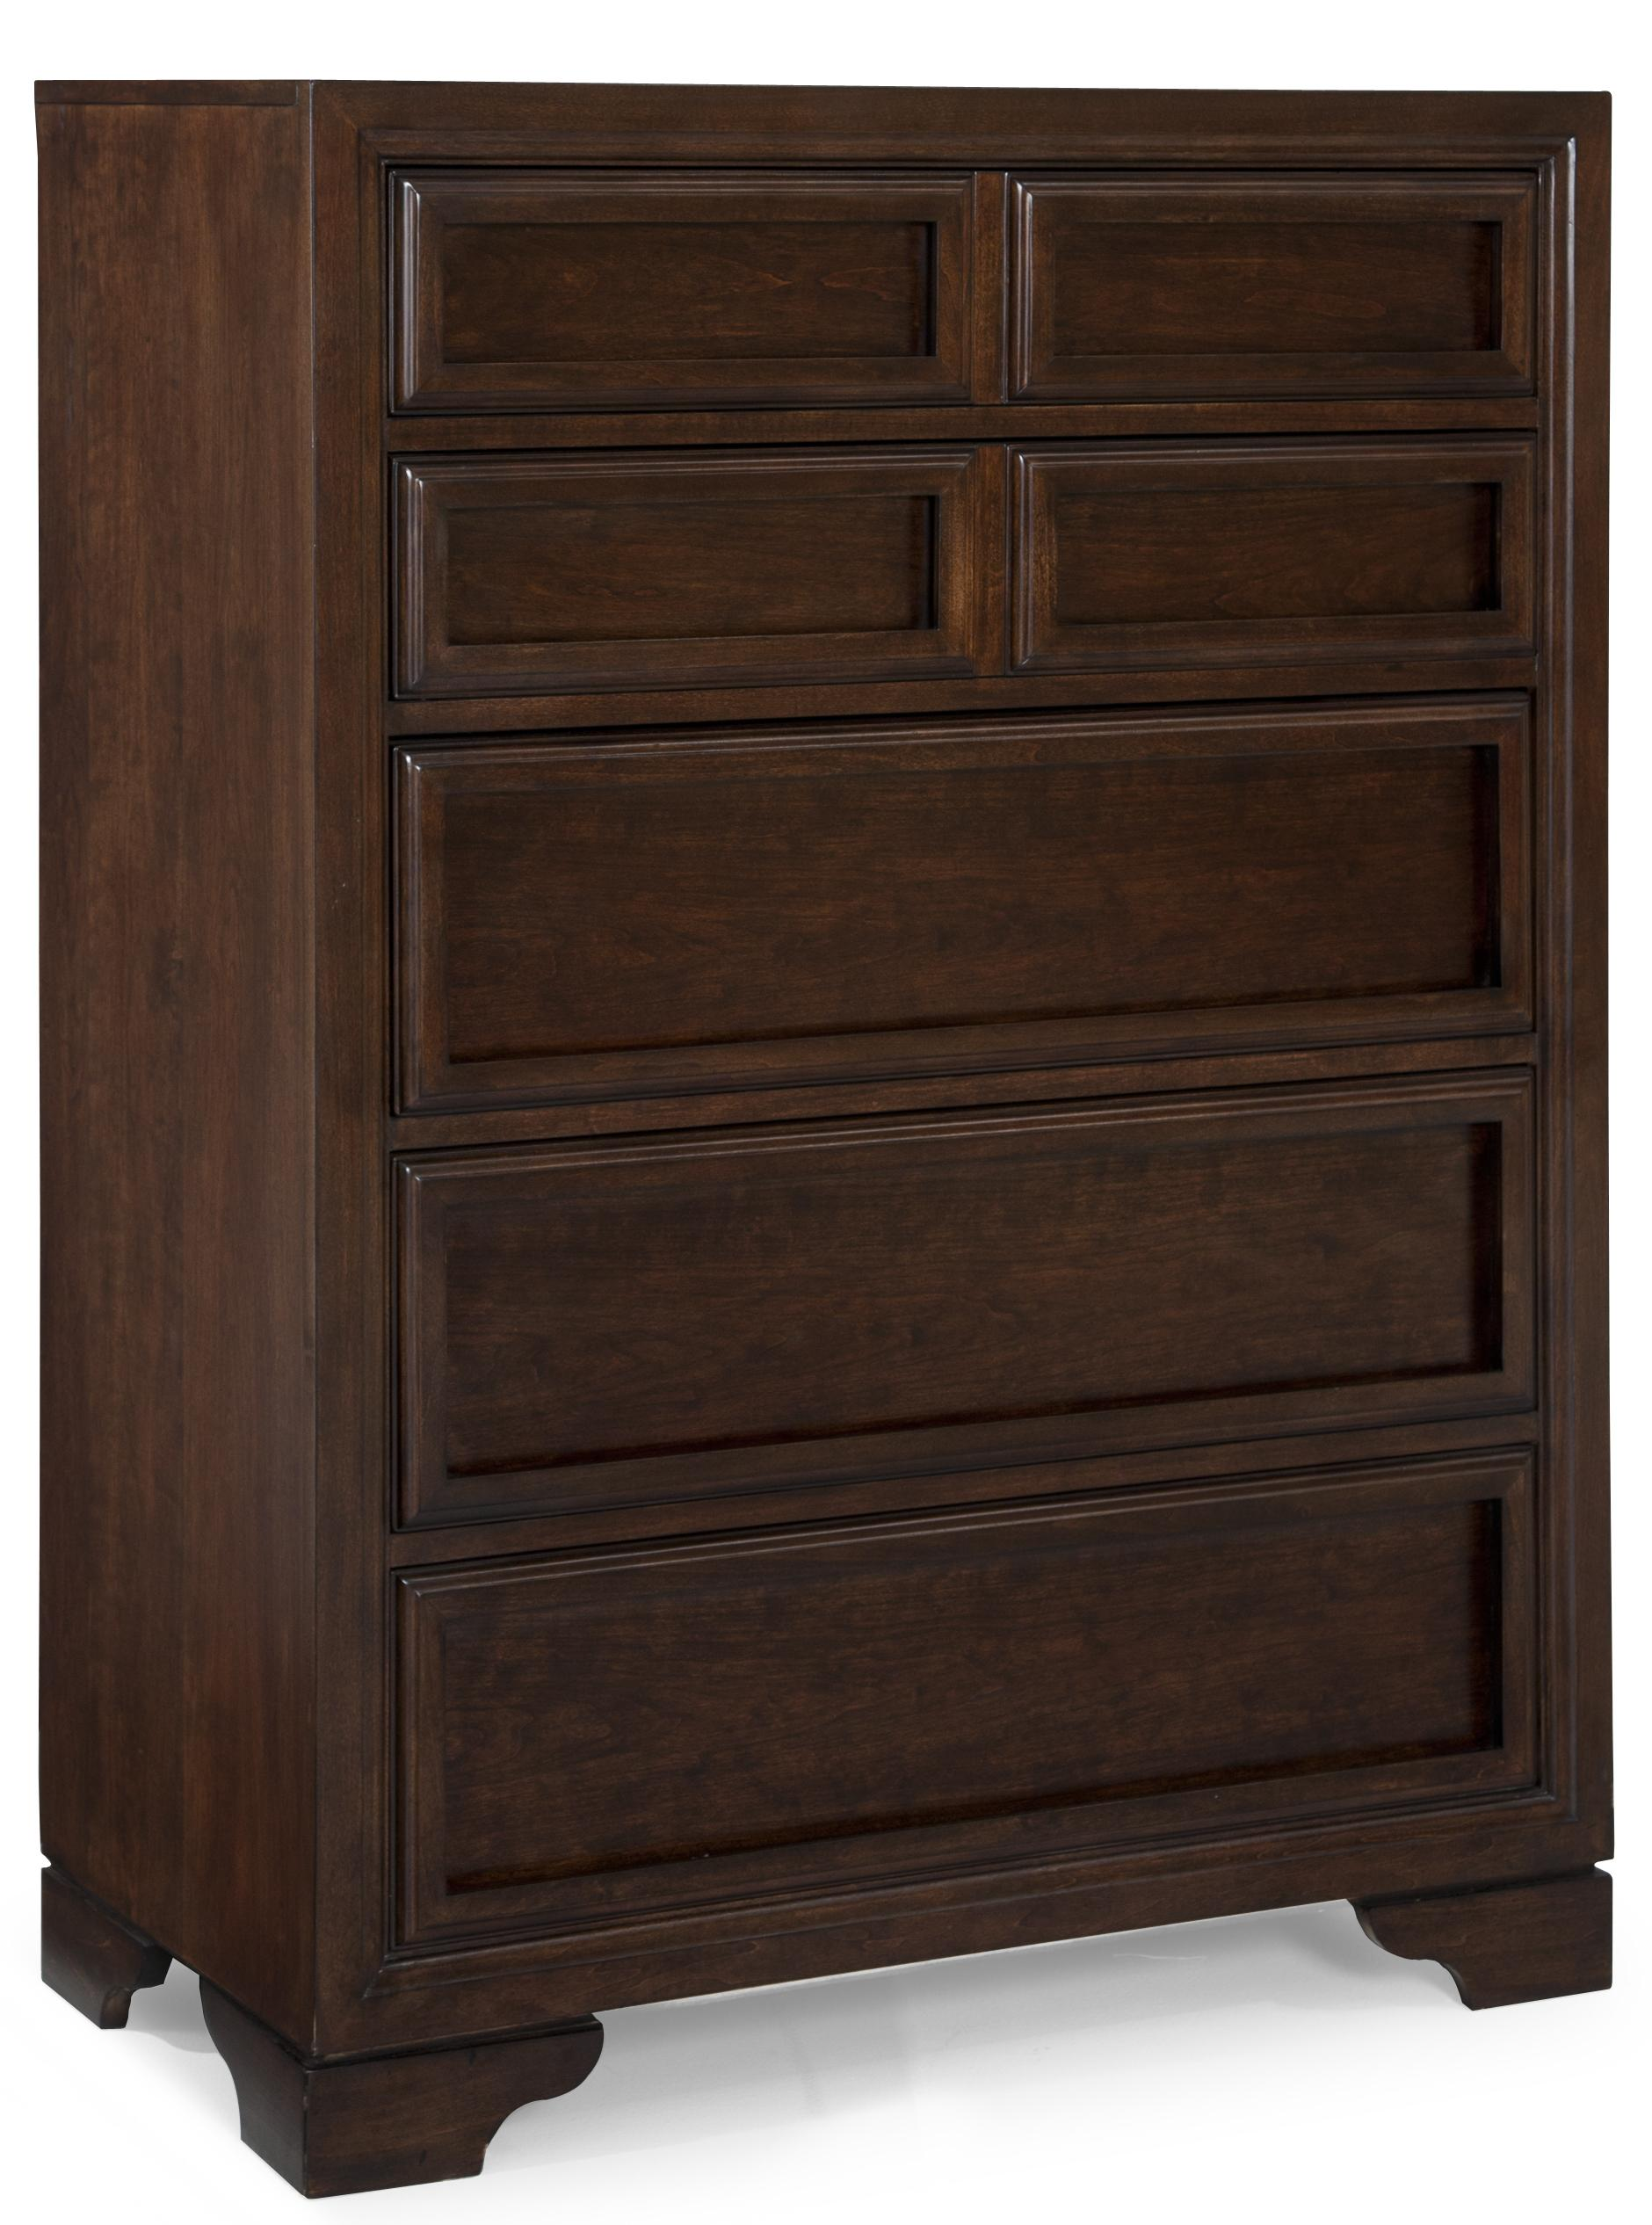 Legacy Classic Kids Benchmark Drawer Chest - Item Number: 2970-2200